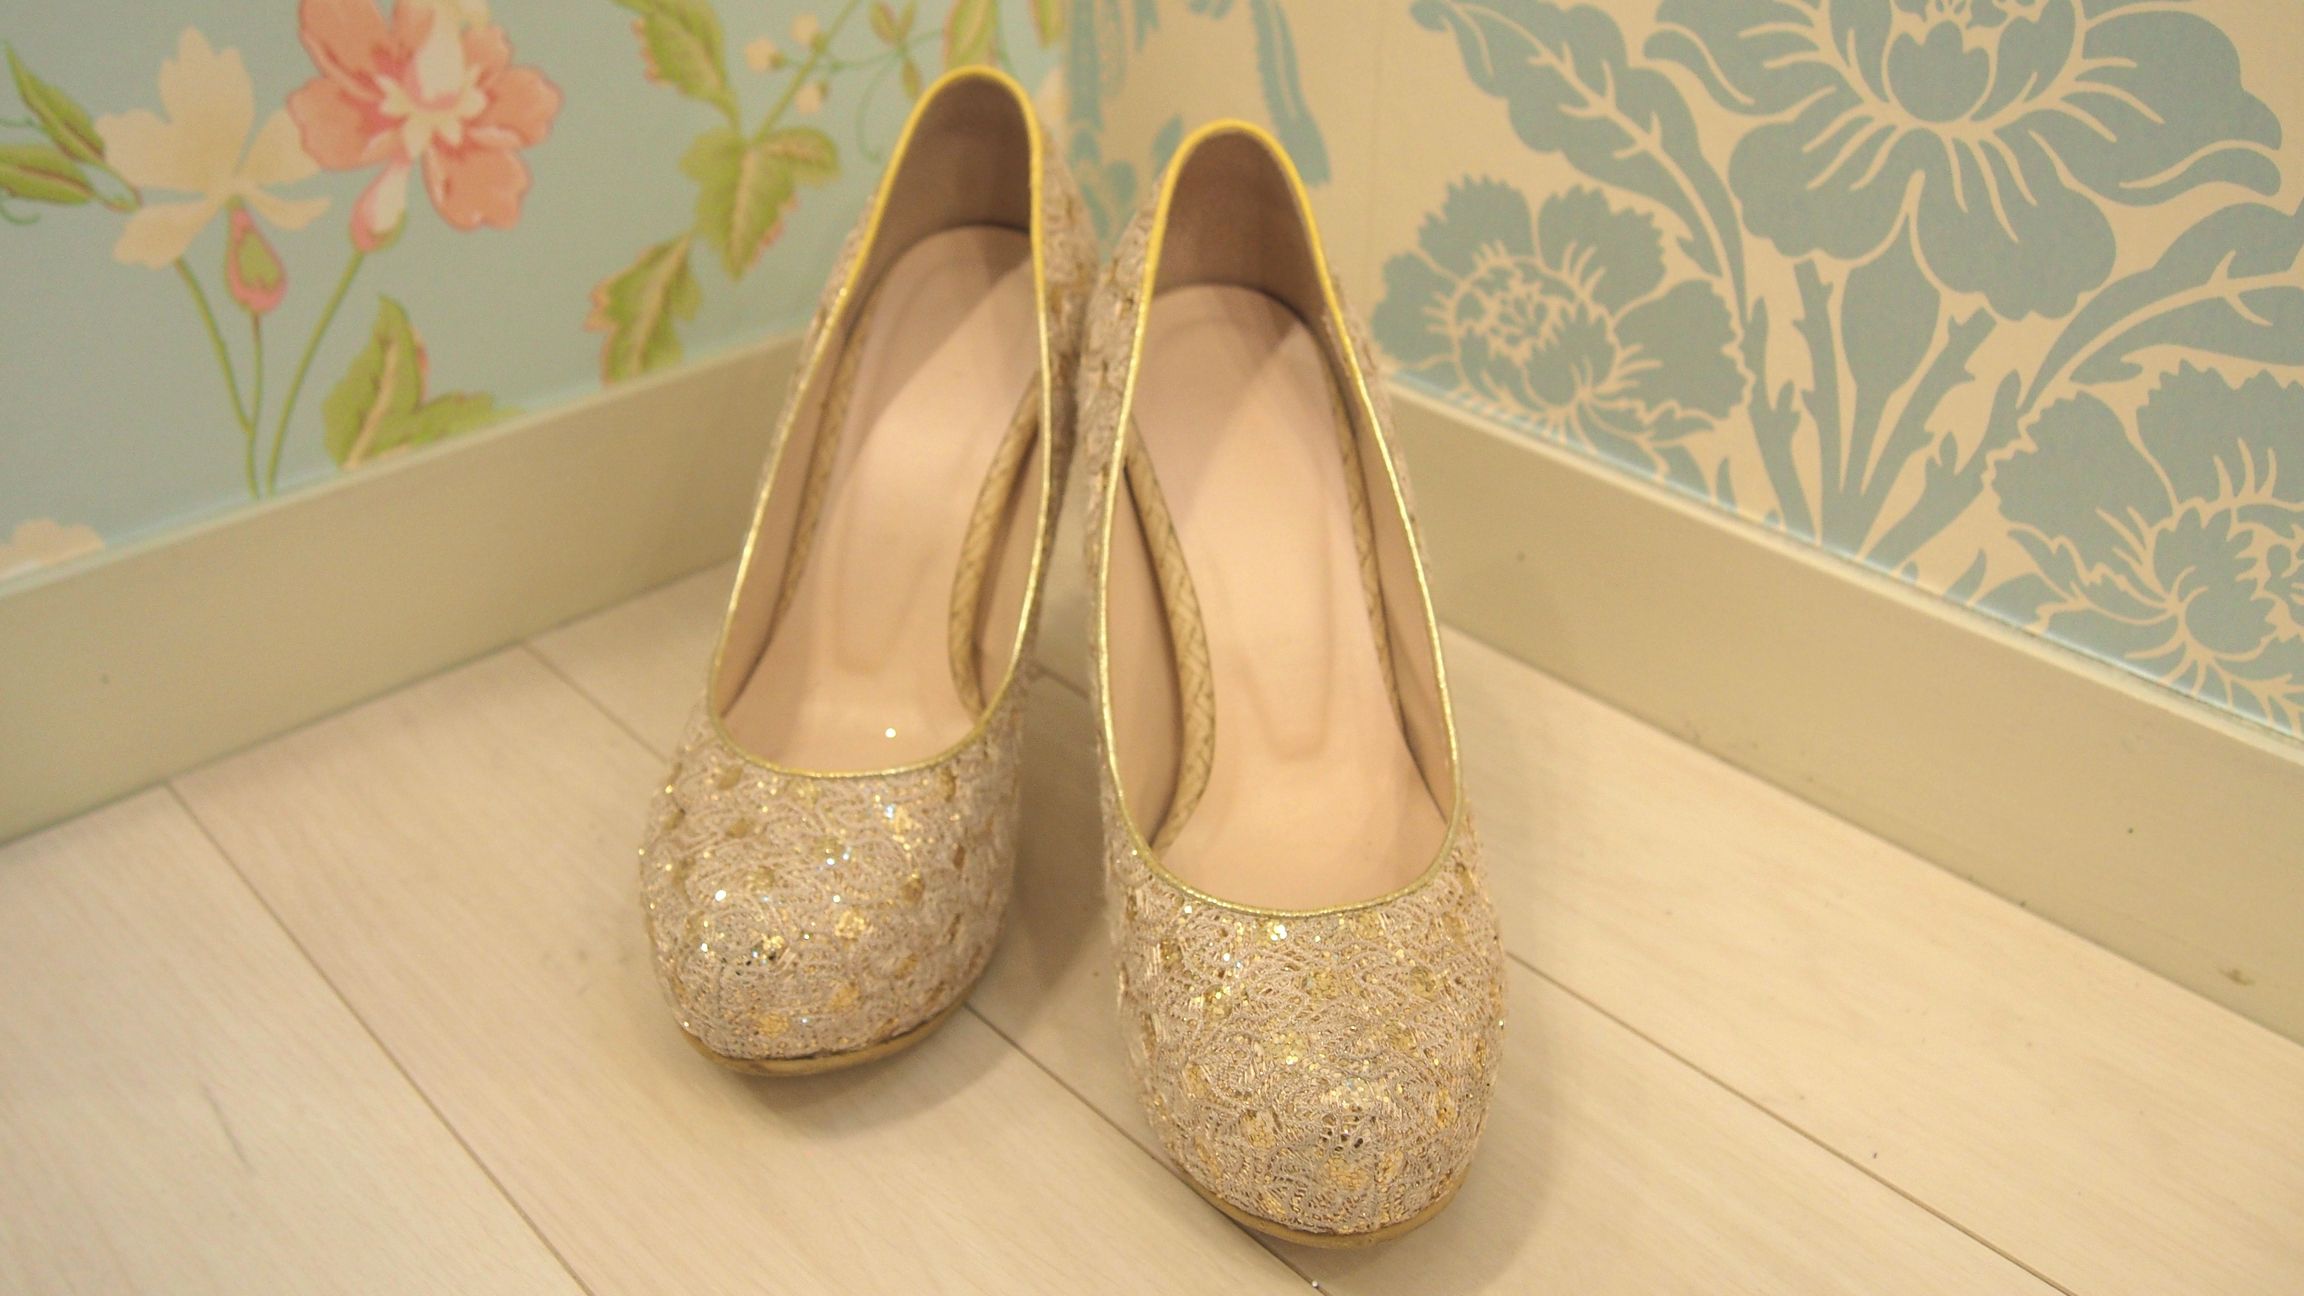 nr_shoes_057